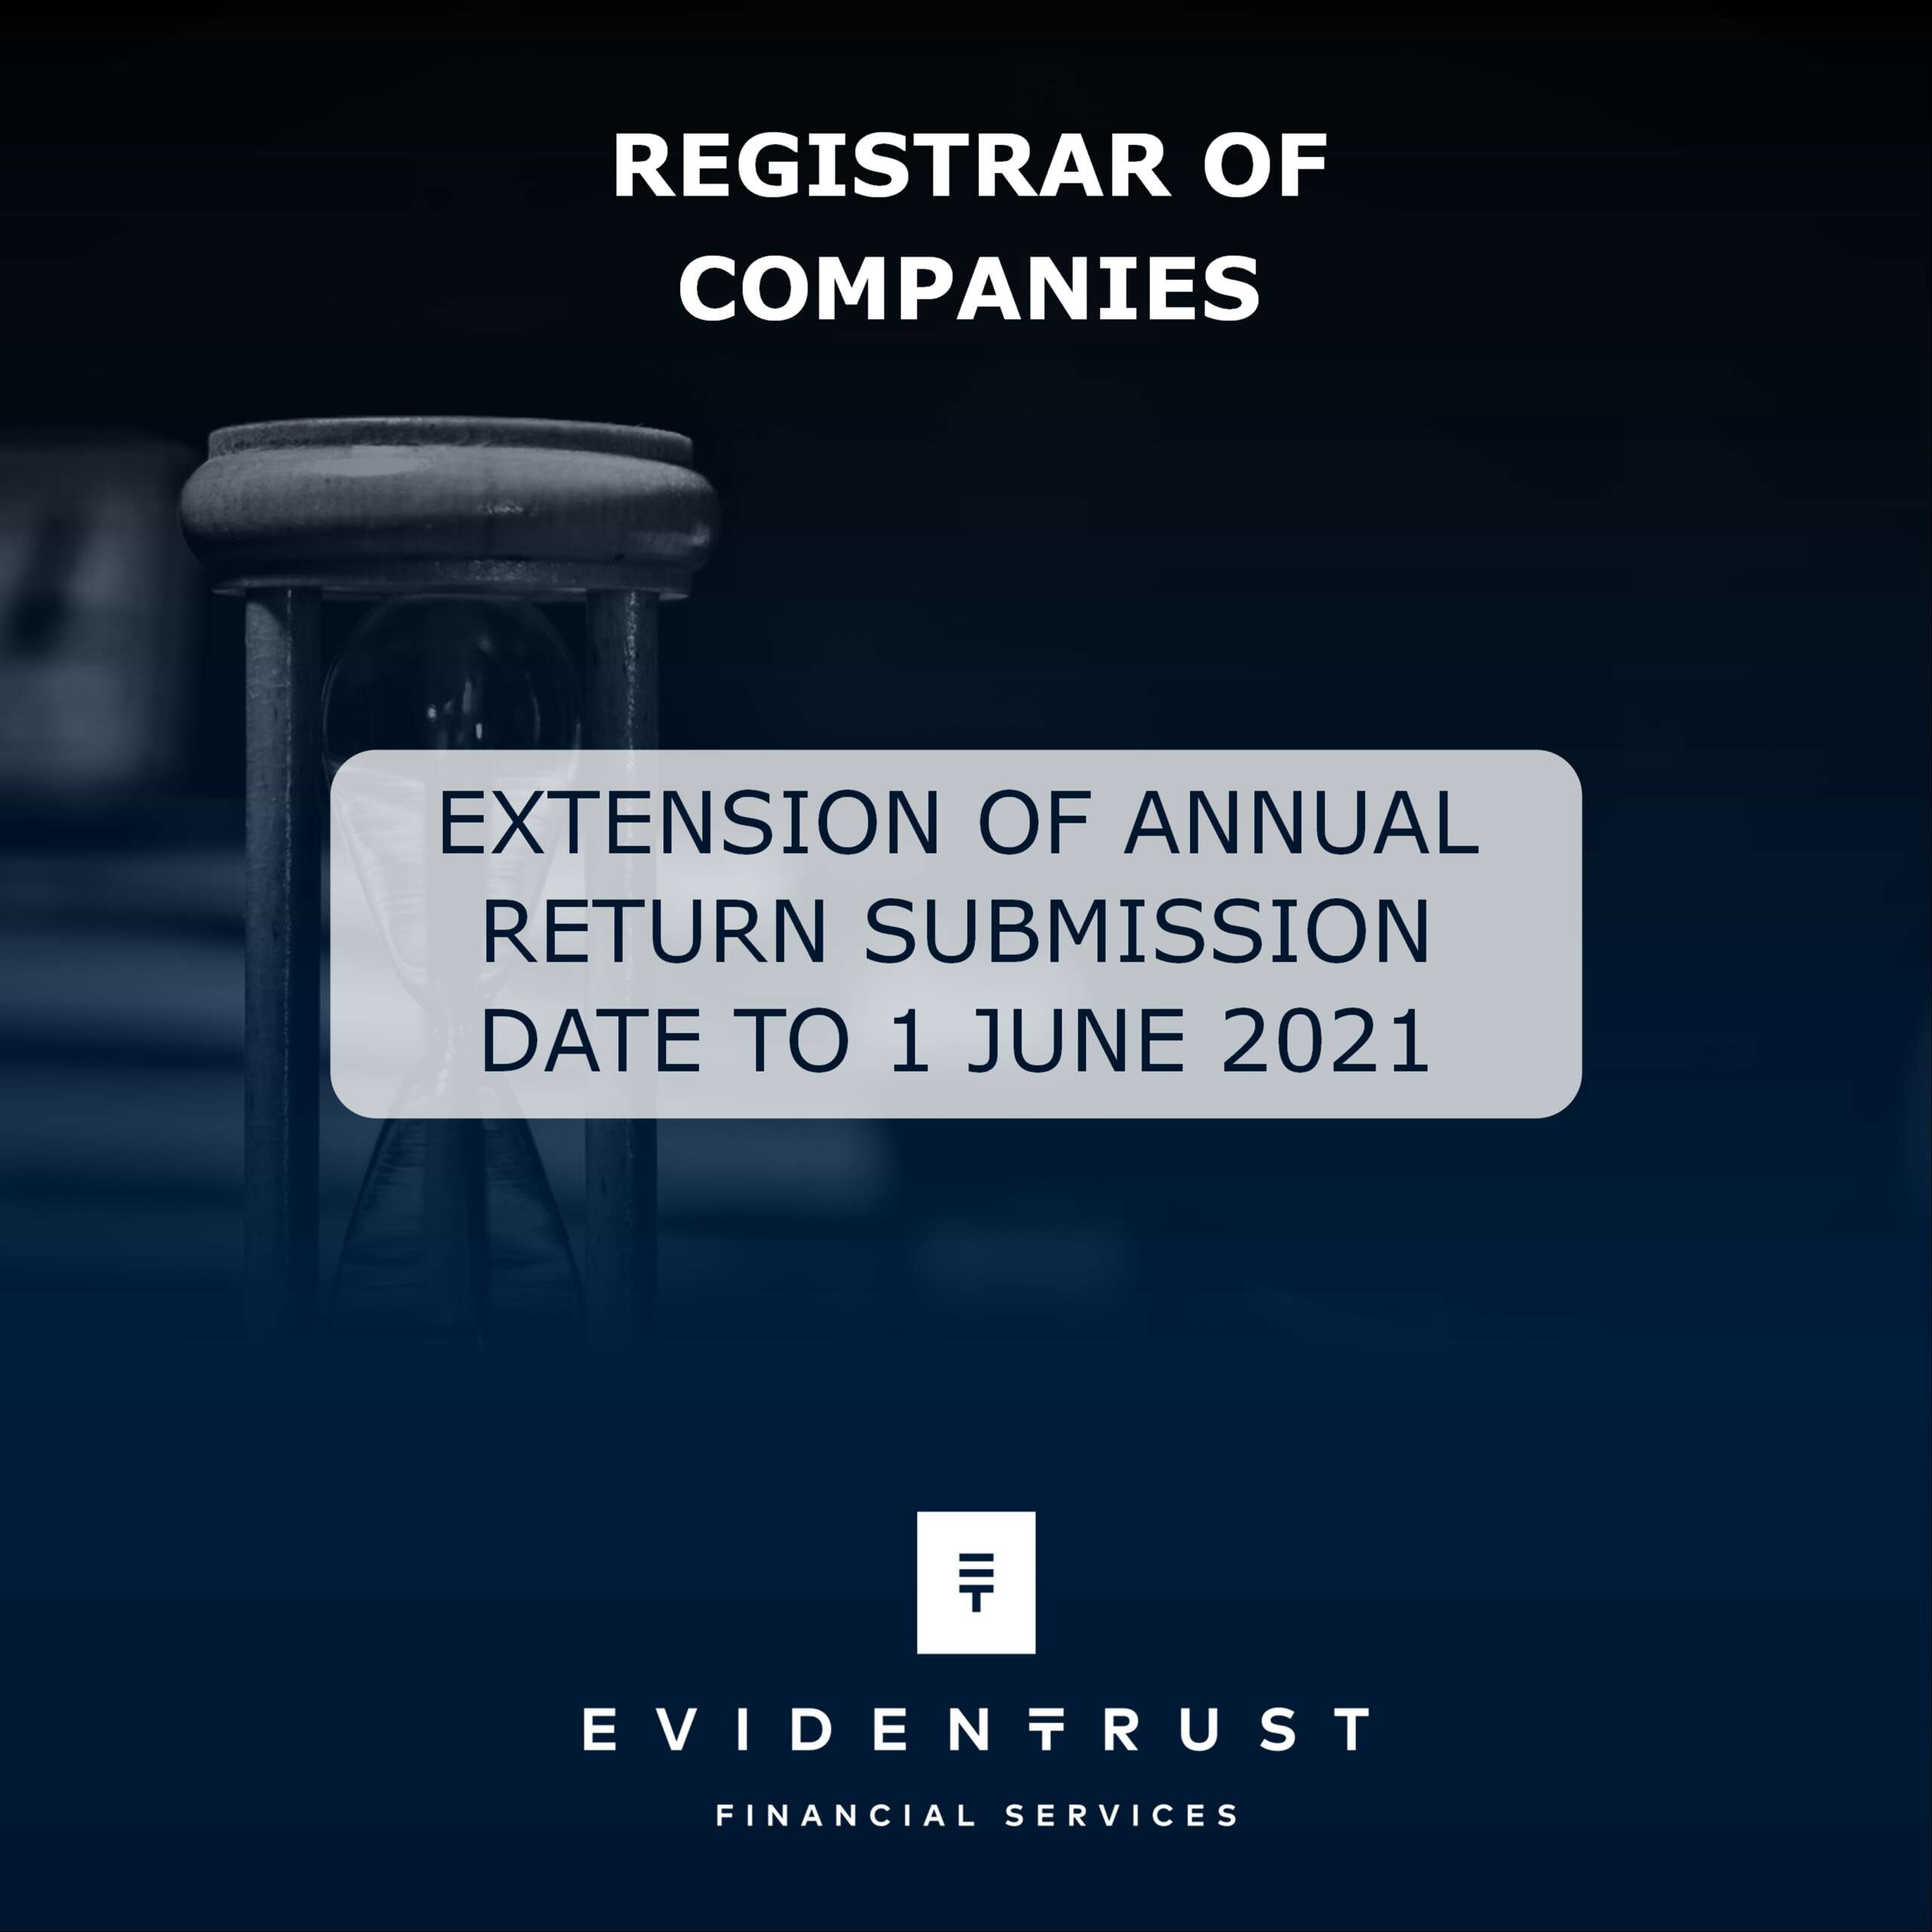 Extension of the deadline for submission of Annual Return to 1 June 2021